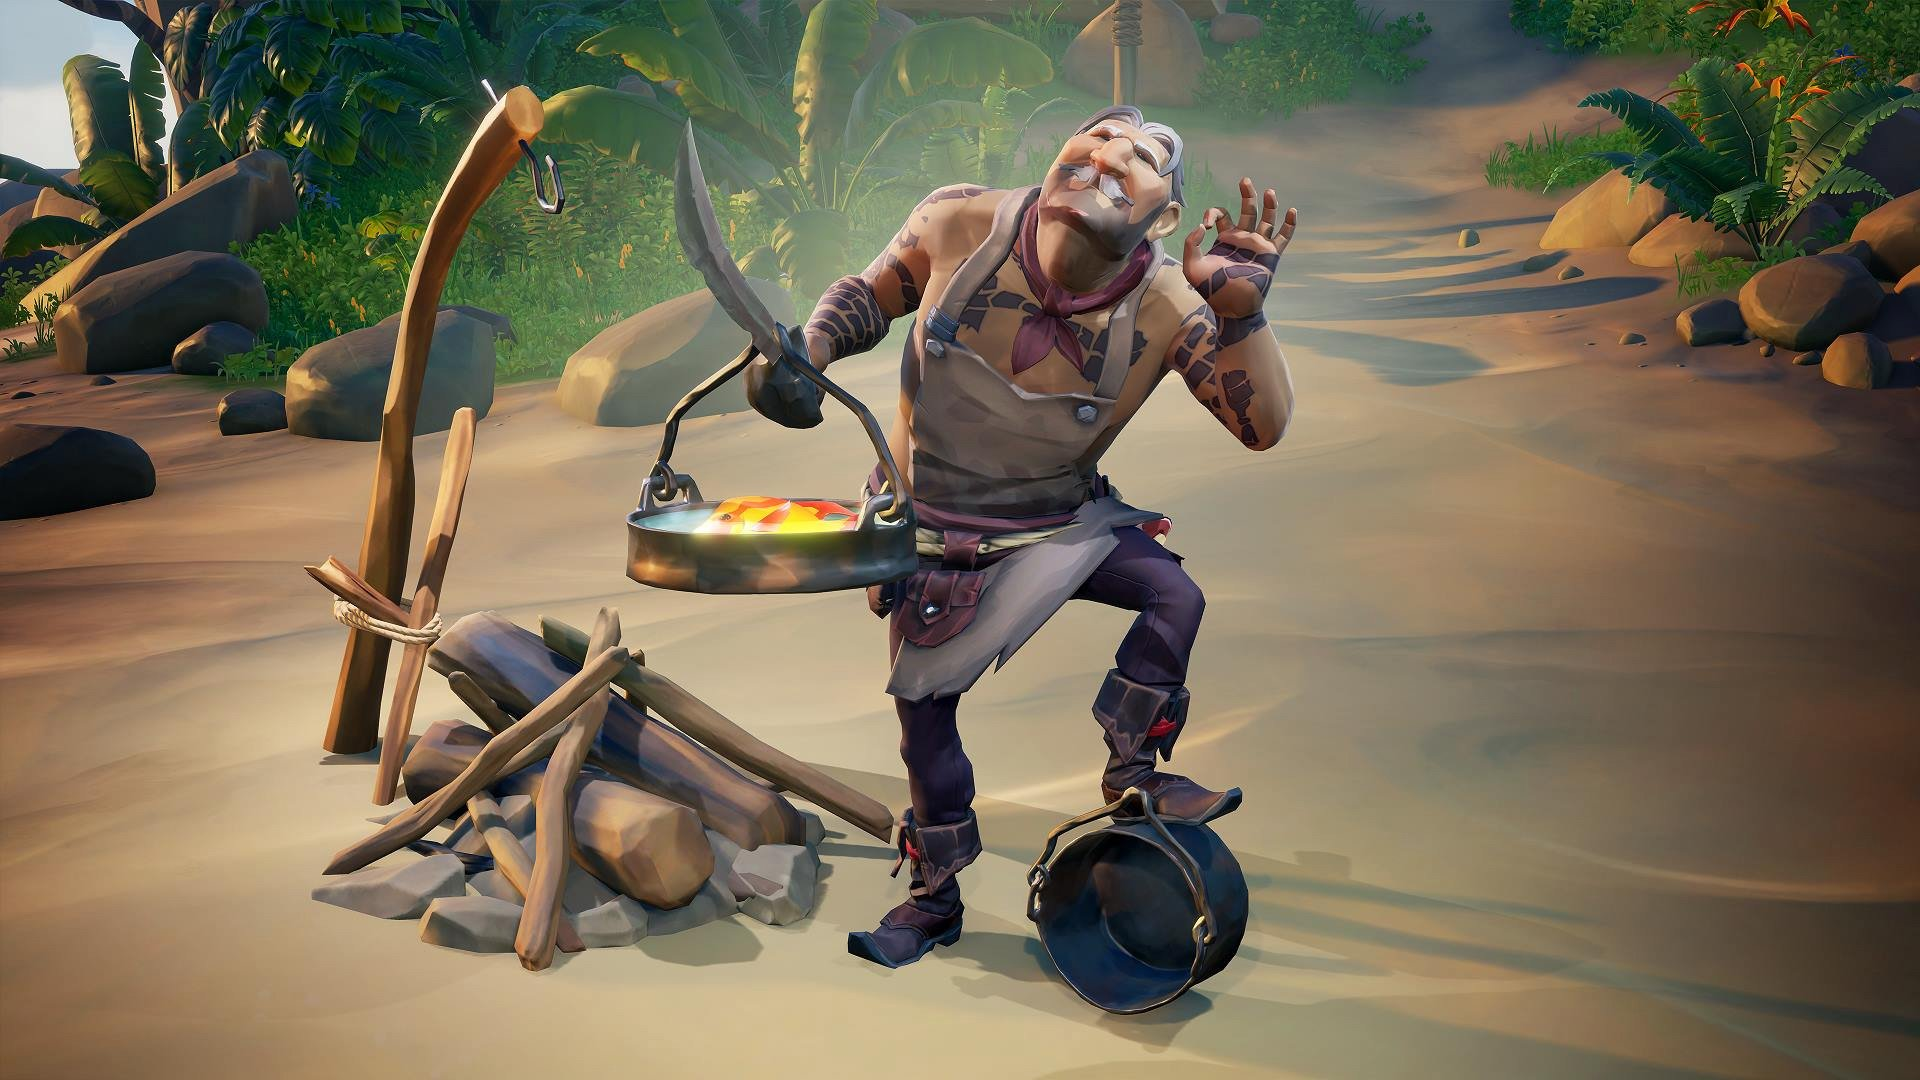 Sea of Thieves has new achievements for cooking, fishing